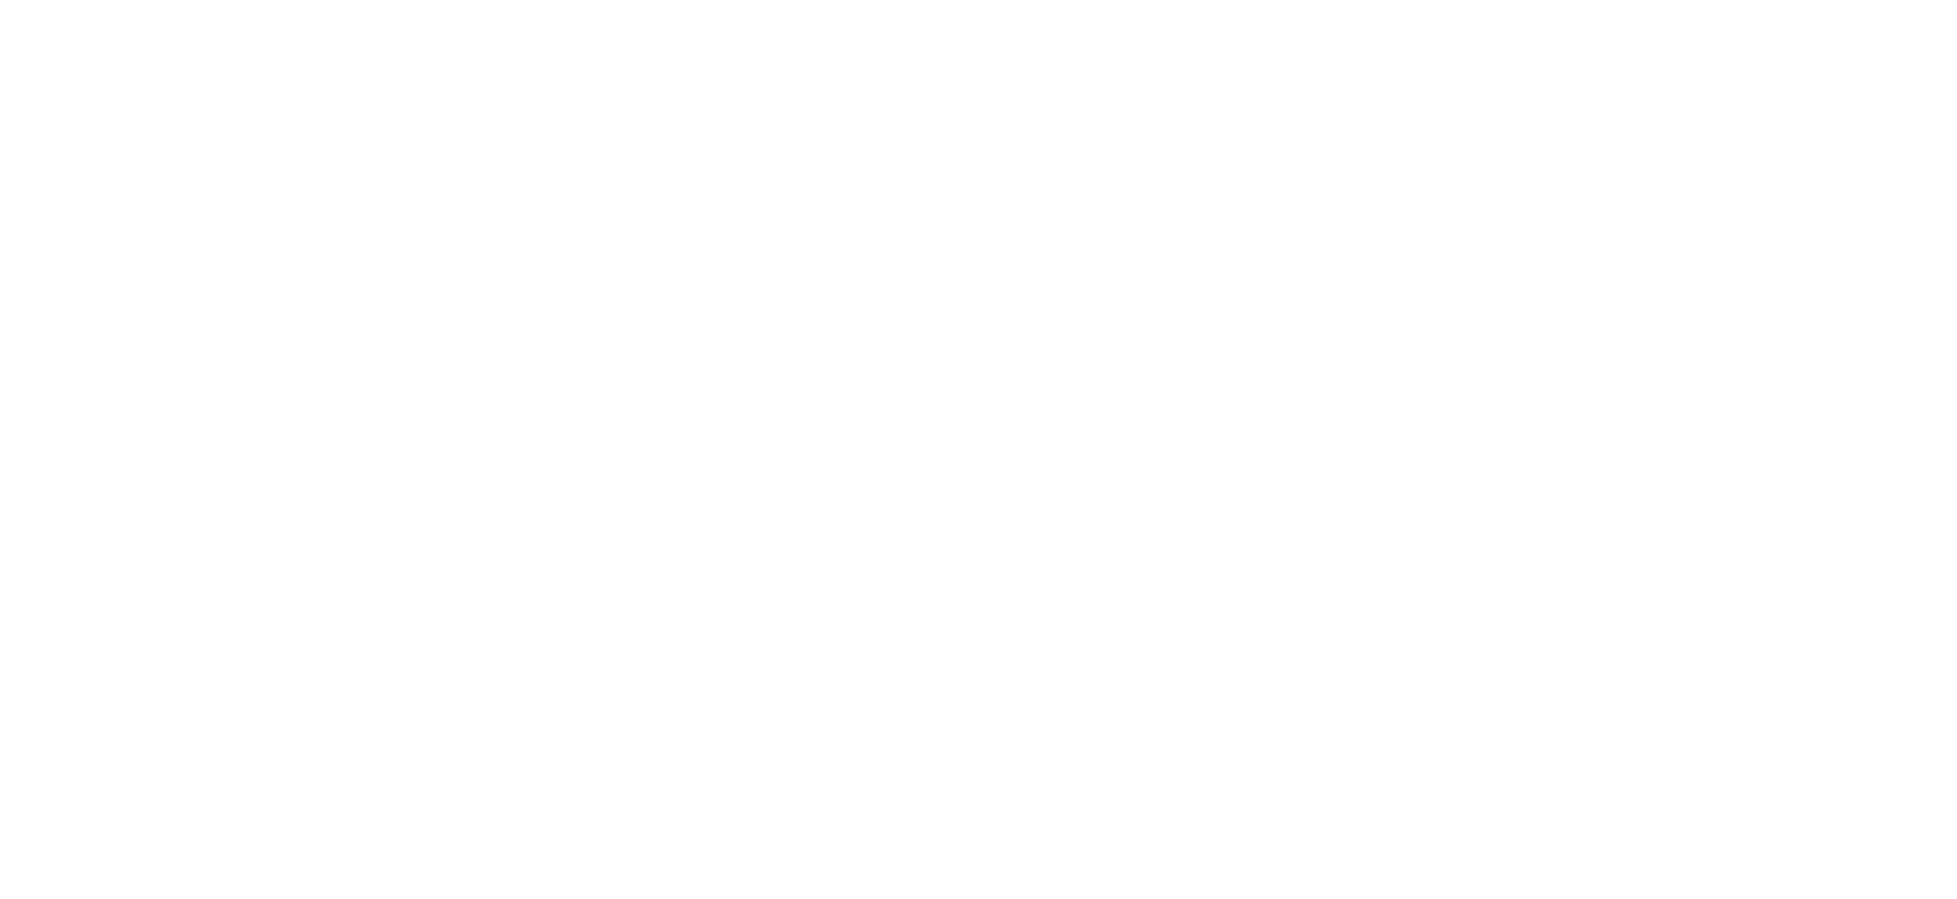 PhotoIreland Foundation